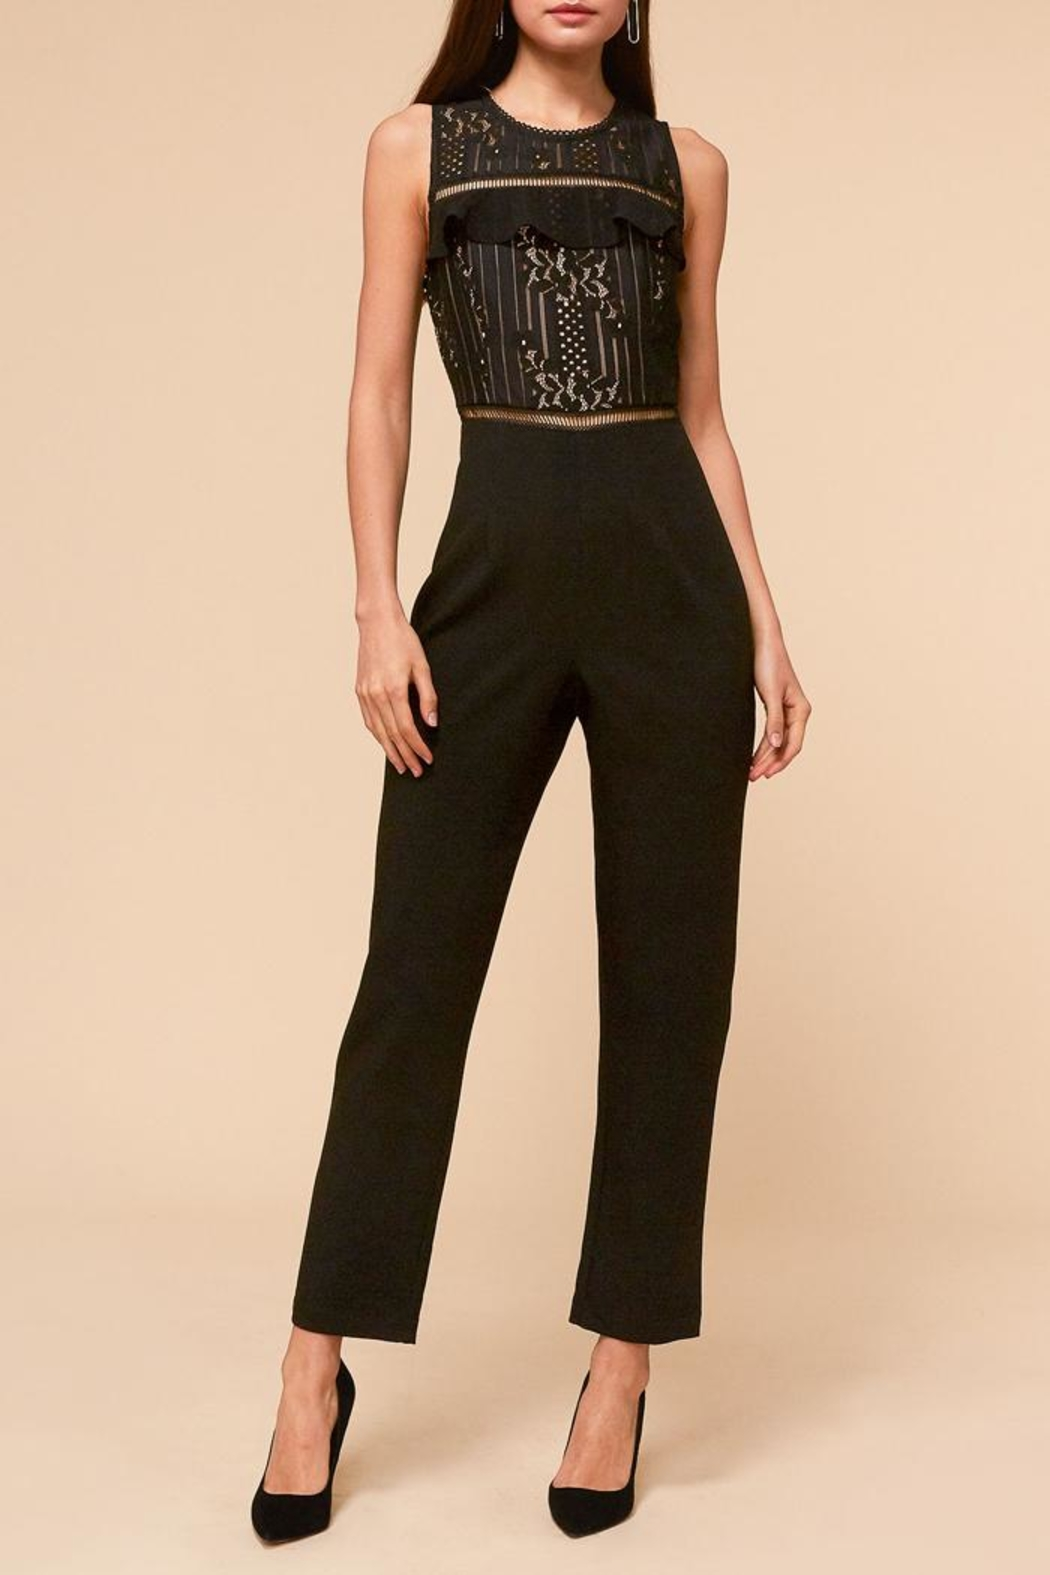 Adelyn Rae Anna Lace Jumpsuit - Main Image